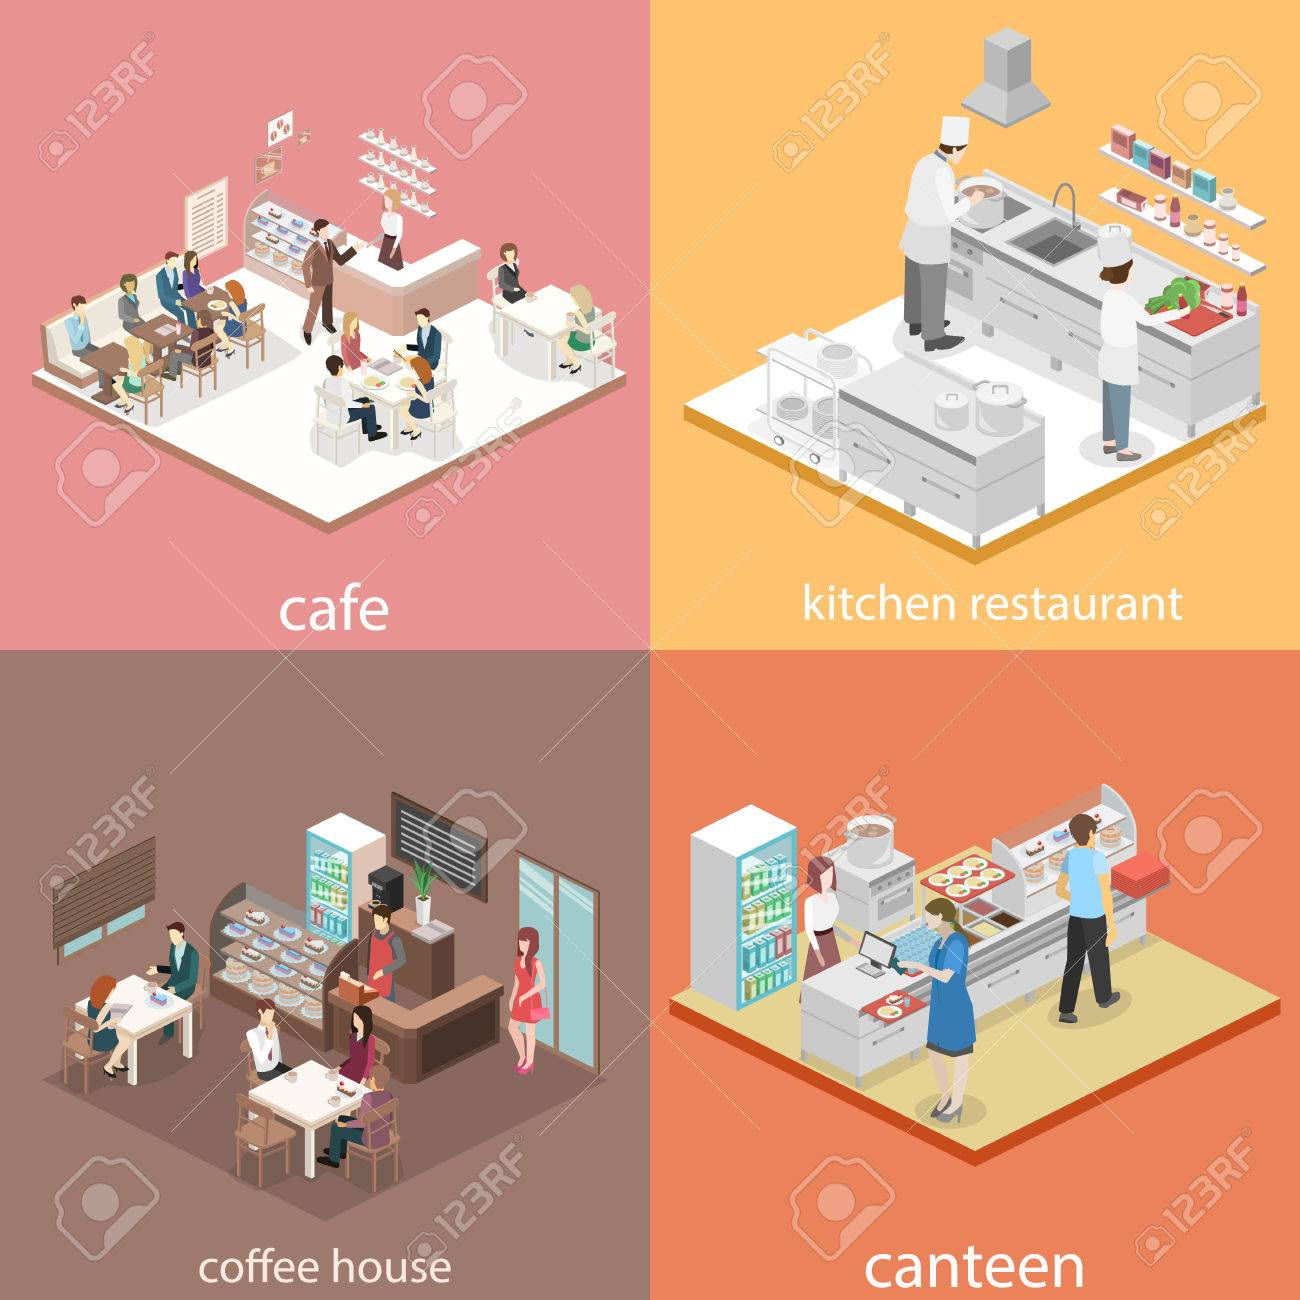 Restaurant Kitchen Cartoon 3 Of 16 Professional Isometric 67795407 Flat 3D Concept Vector Interior